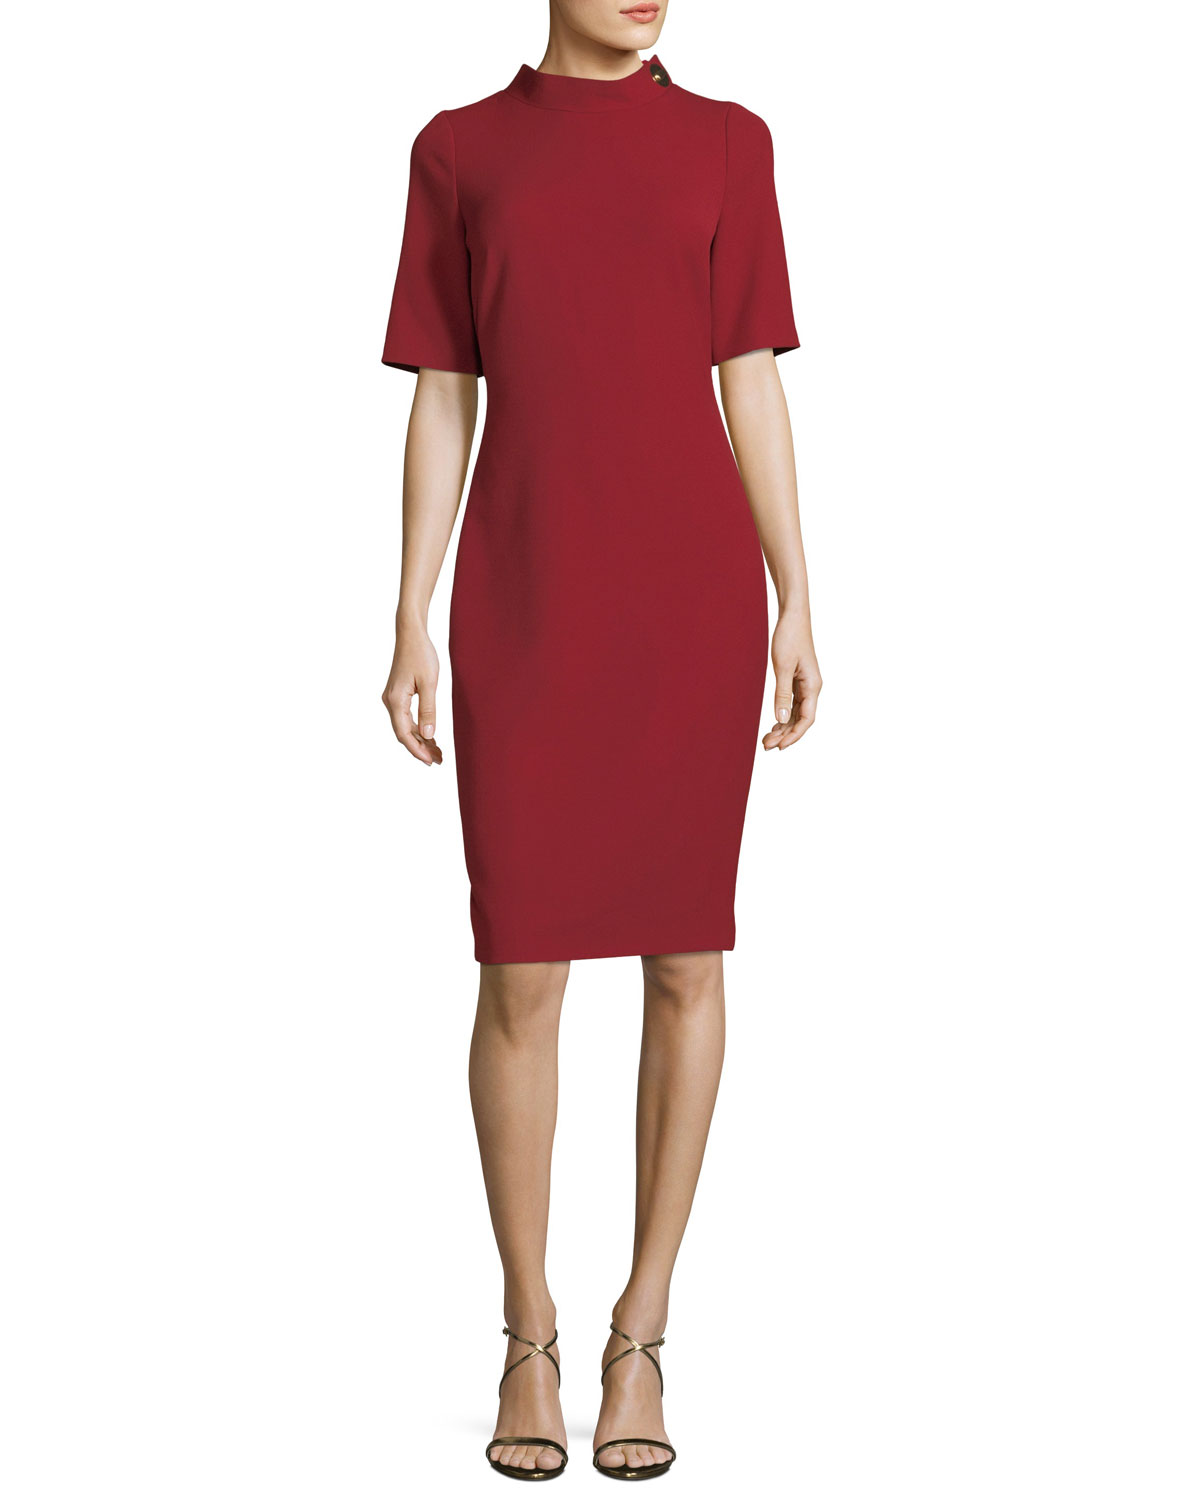 Turn-Lock Elbow-Sleeve Sheath Dress